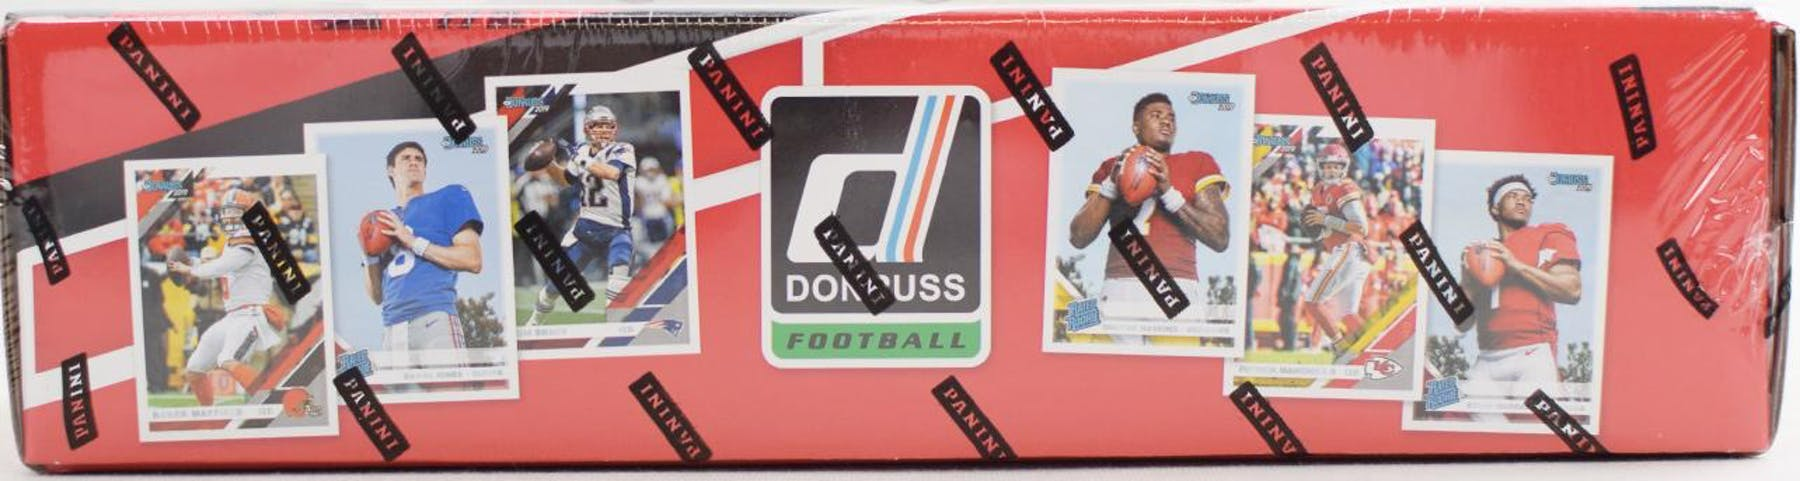 2019 Panini Donruss Football Factory Set | Eastridge Sports Cards